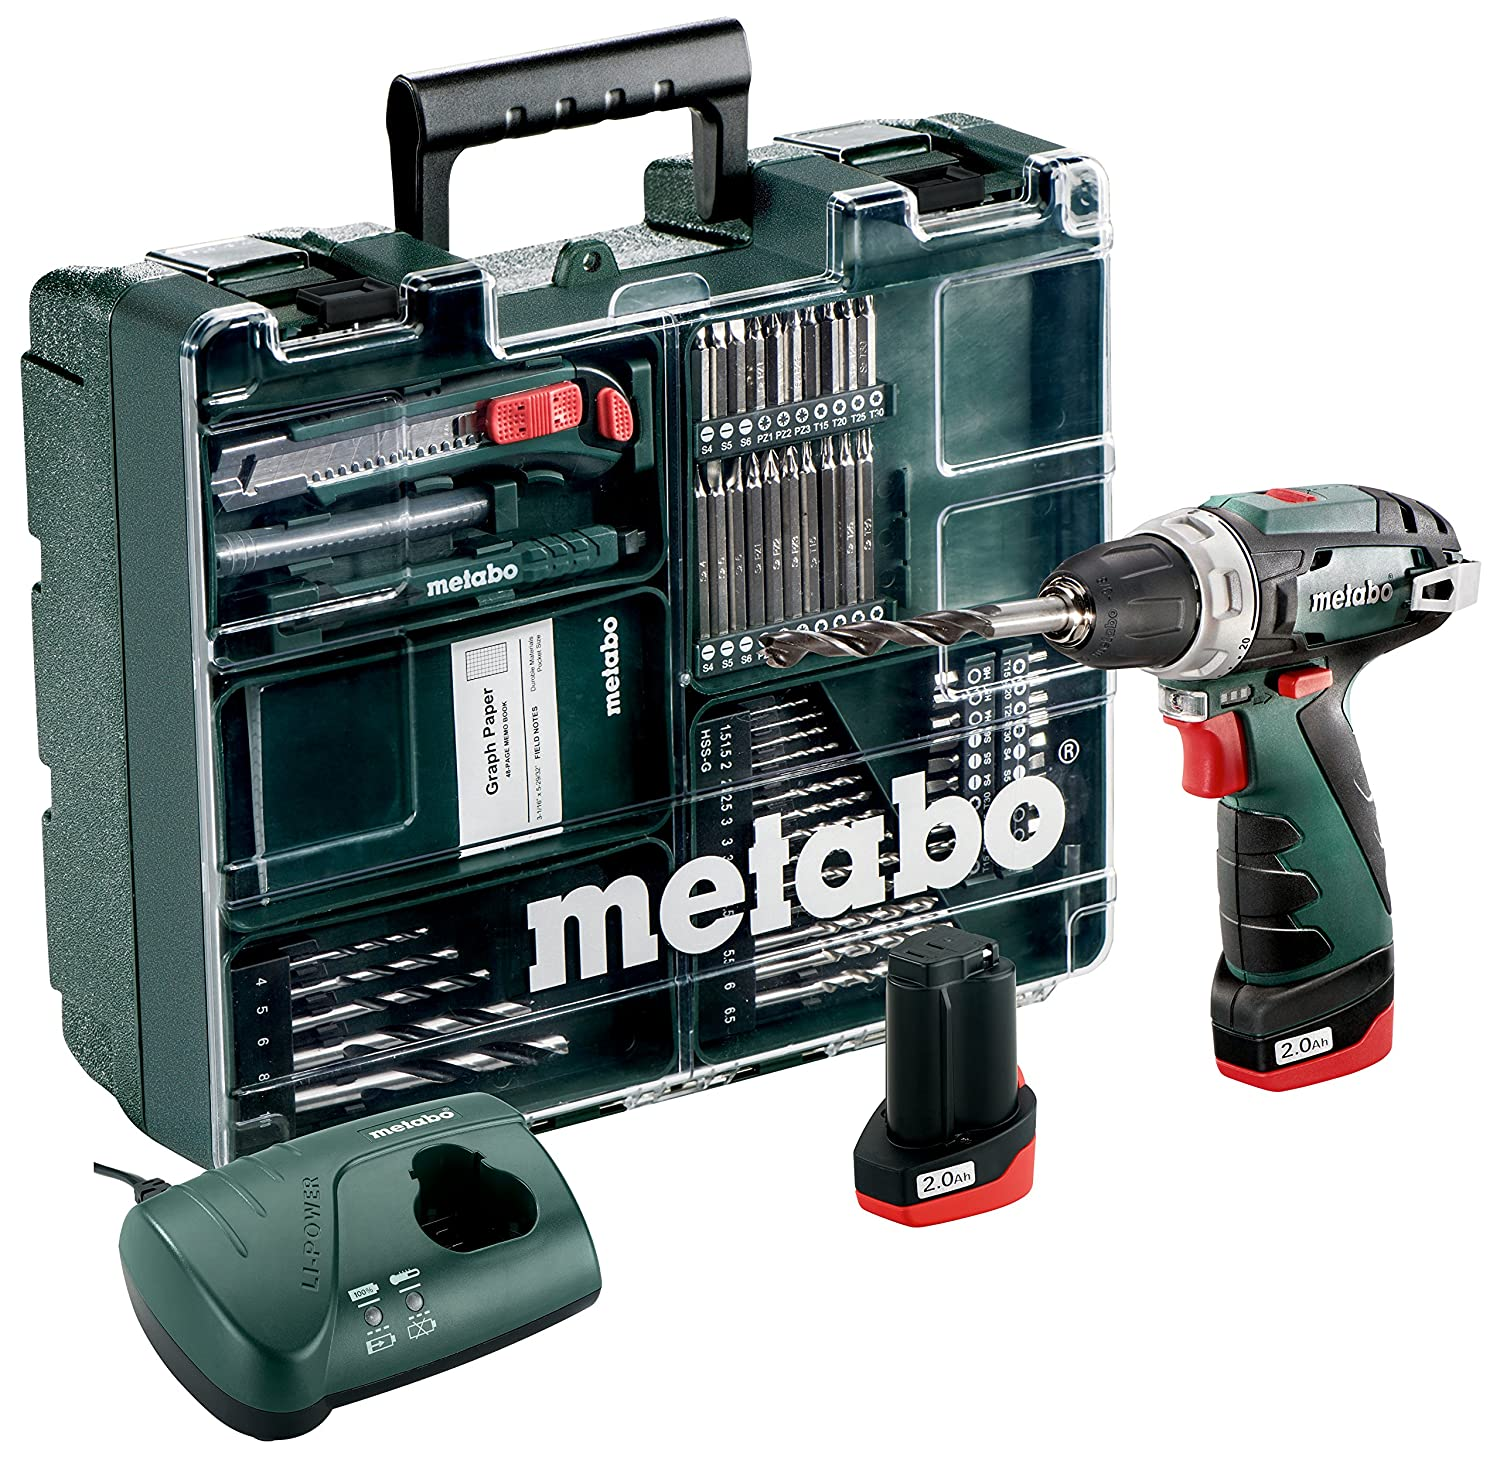 Green Charger 2 x 2.0Ah Batteries and 62 Piece Mobile Workshop Metabo 6.00080.88 PowerMaxx BS Basic Driver with Quick Change Drill Chuck 1